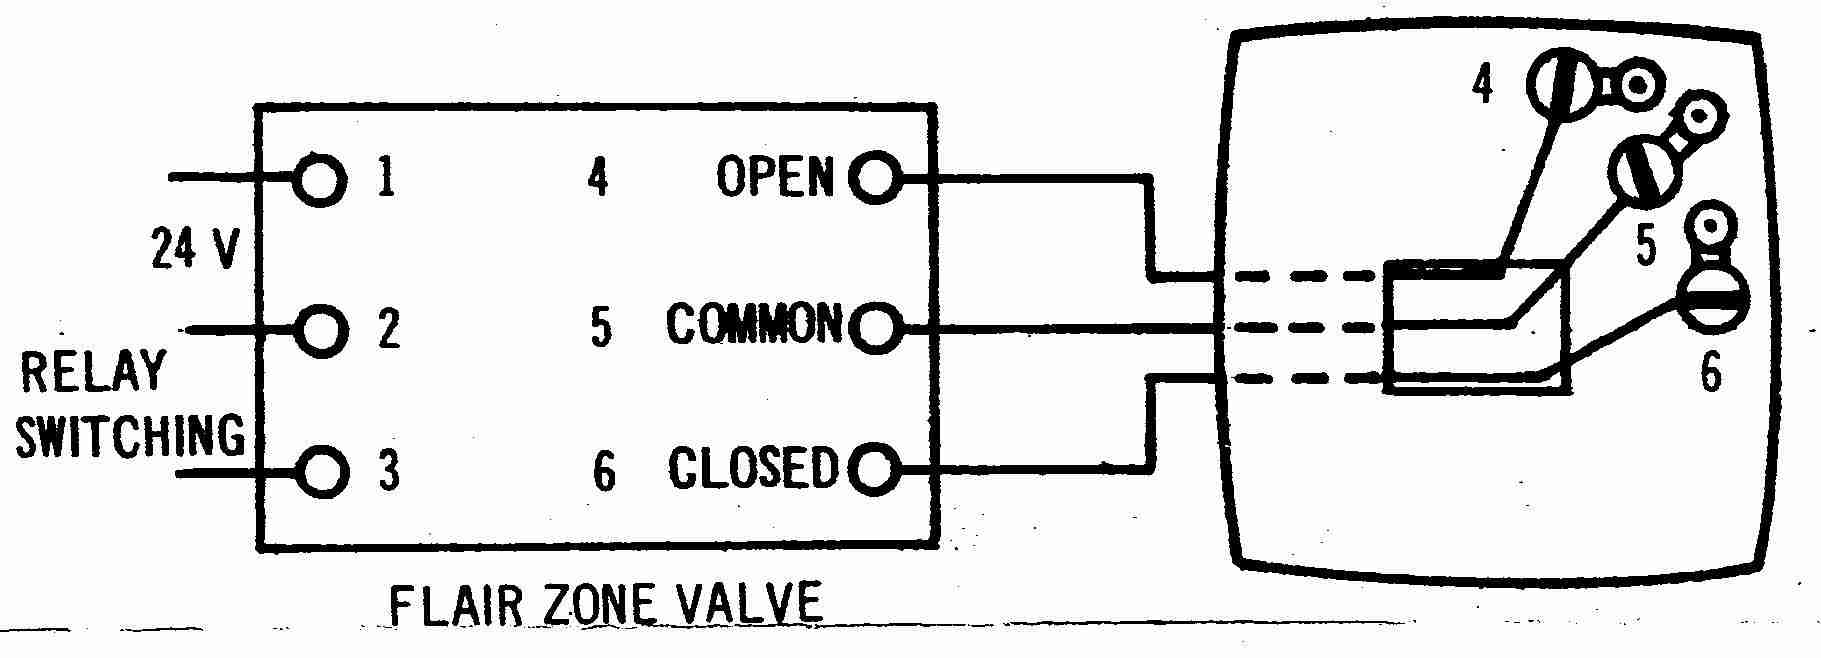 Zone Valve Wiring Installation & Instructions: Guide To Heating - Taco Nest And External Transformer Wiring Diagram